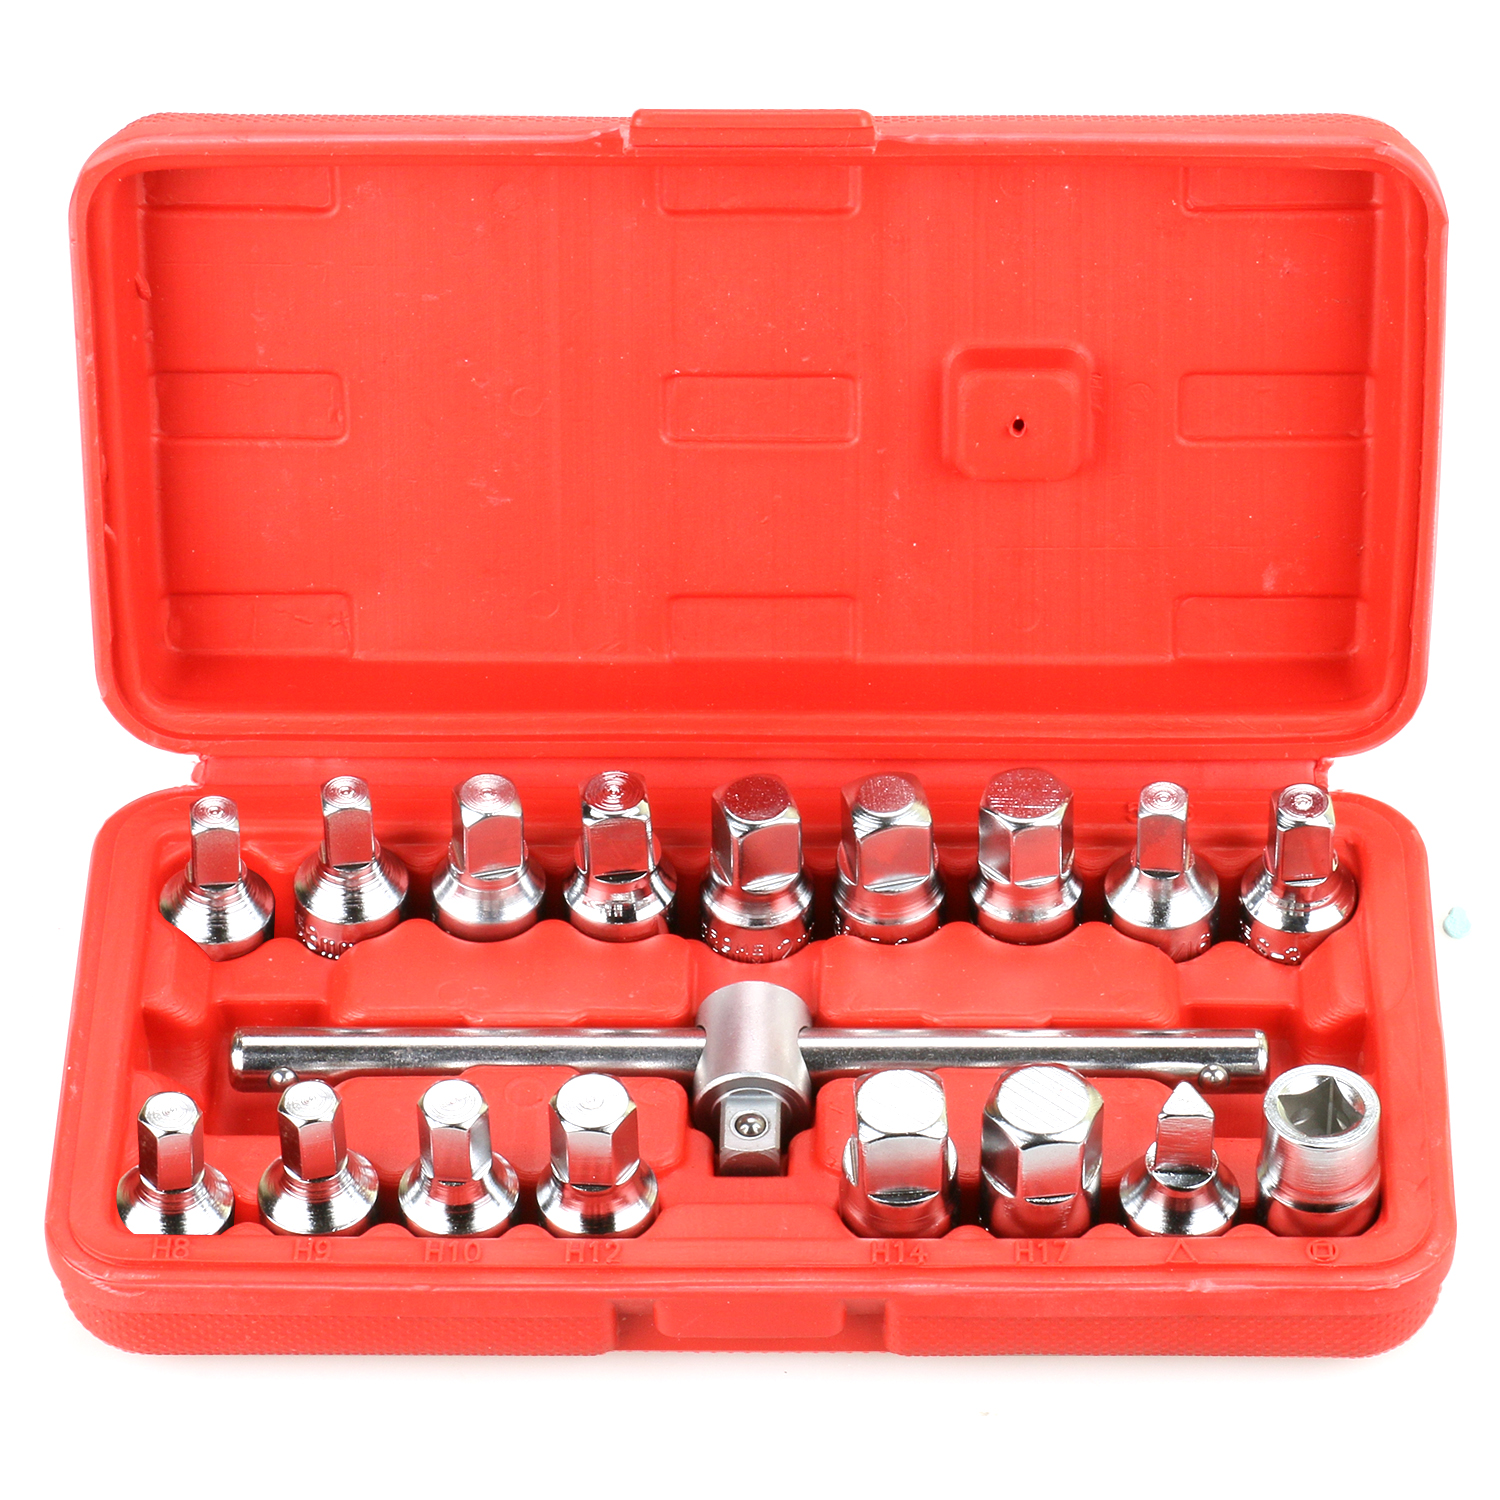 18pcs Oil Drain Pipe Plug Triangle Square Hexagon Socket Drive Sliding T-Bar Removal Kit Screw Set Pan Wrench Bottom Nut Adaptor